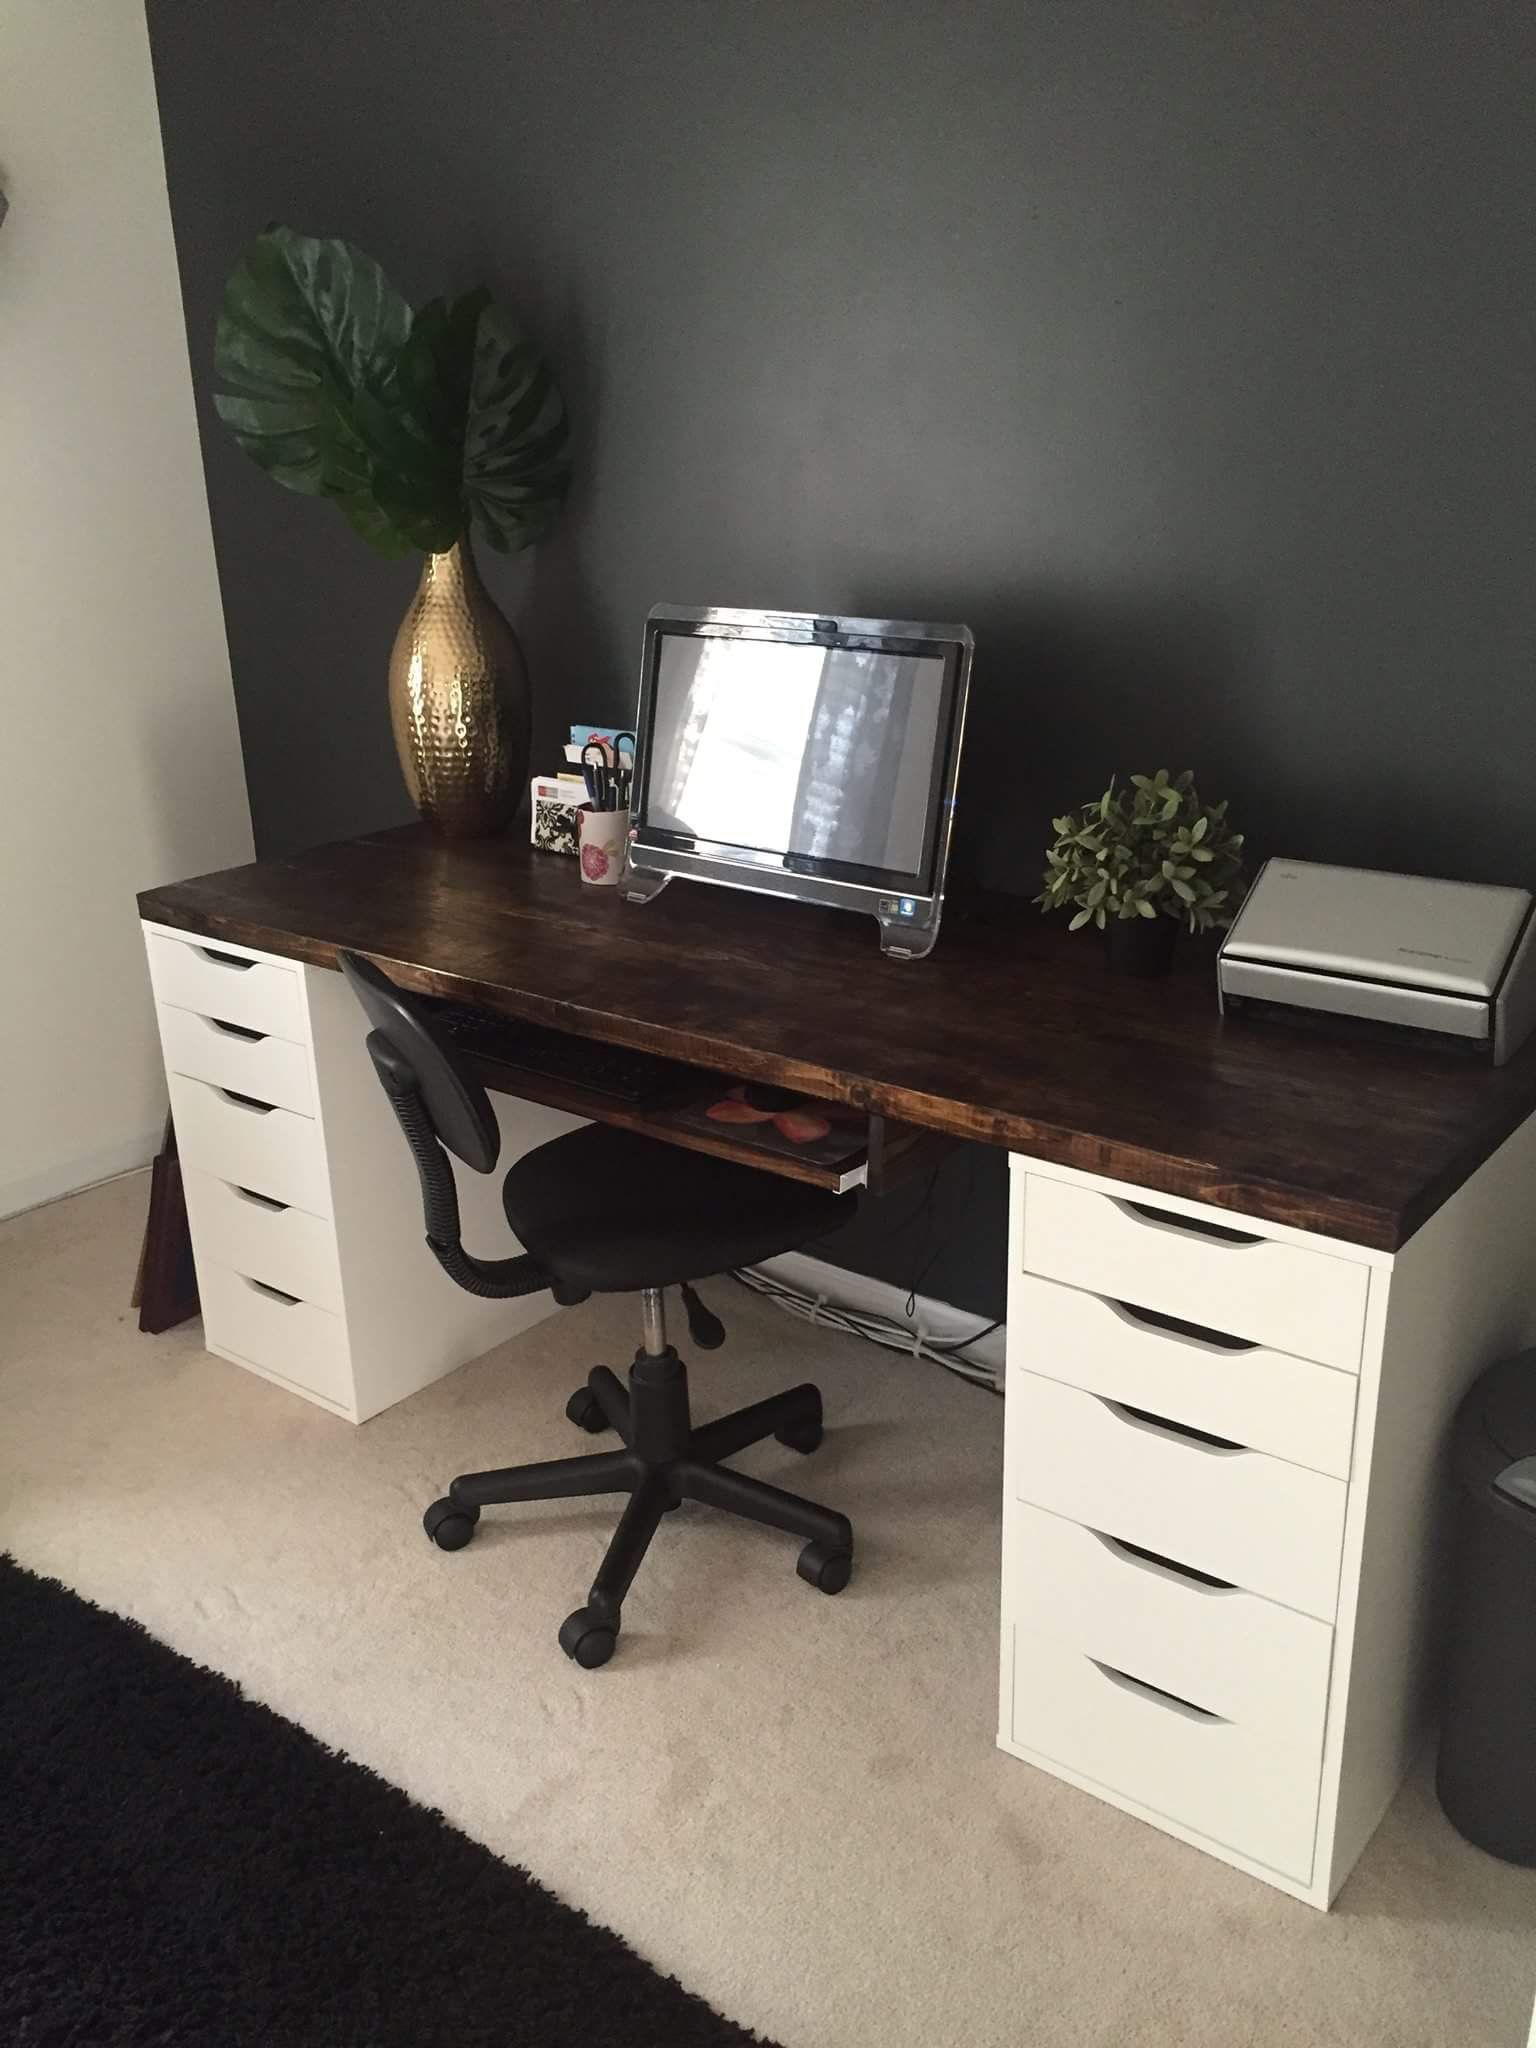 Nothing like working from a home office feel inspired with this home office decor Work It Pinterest